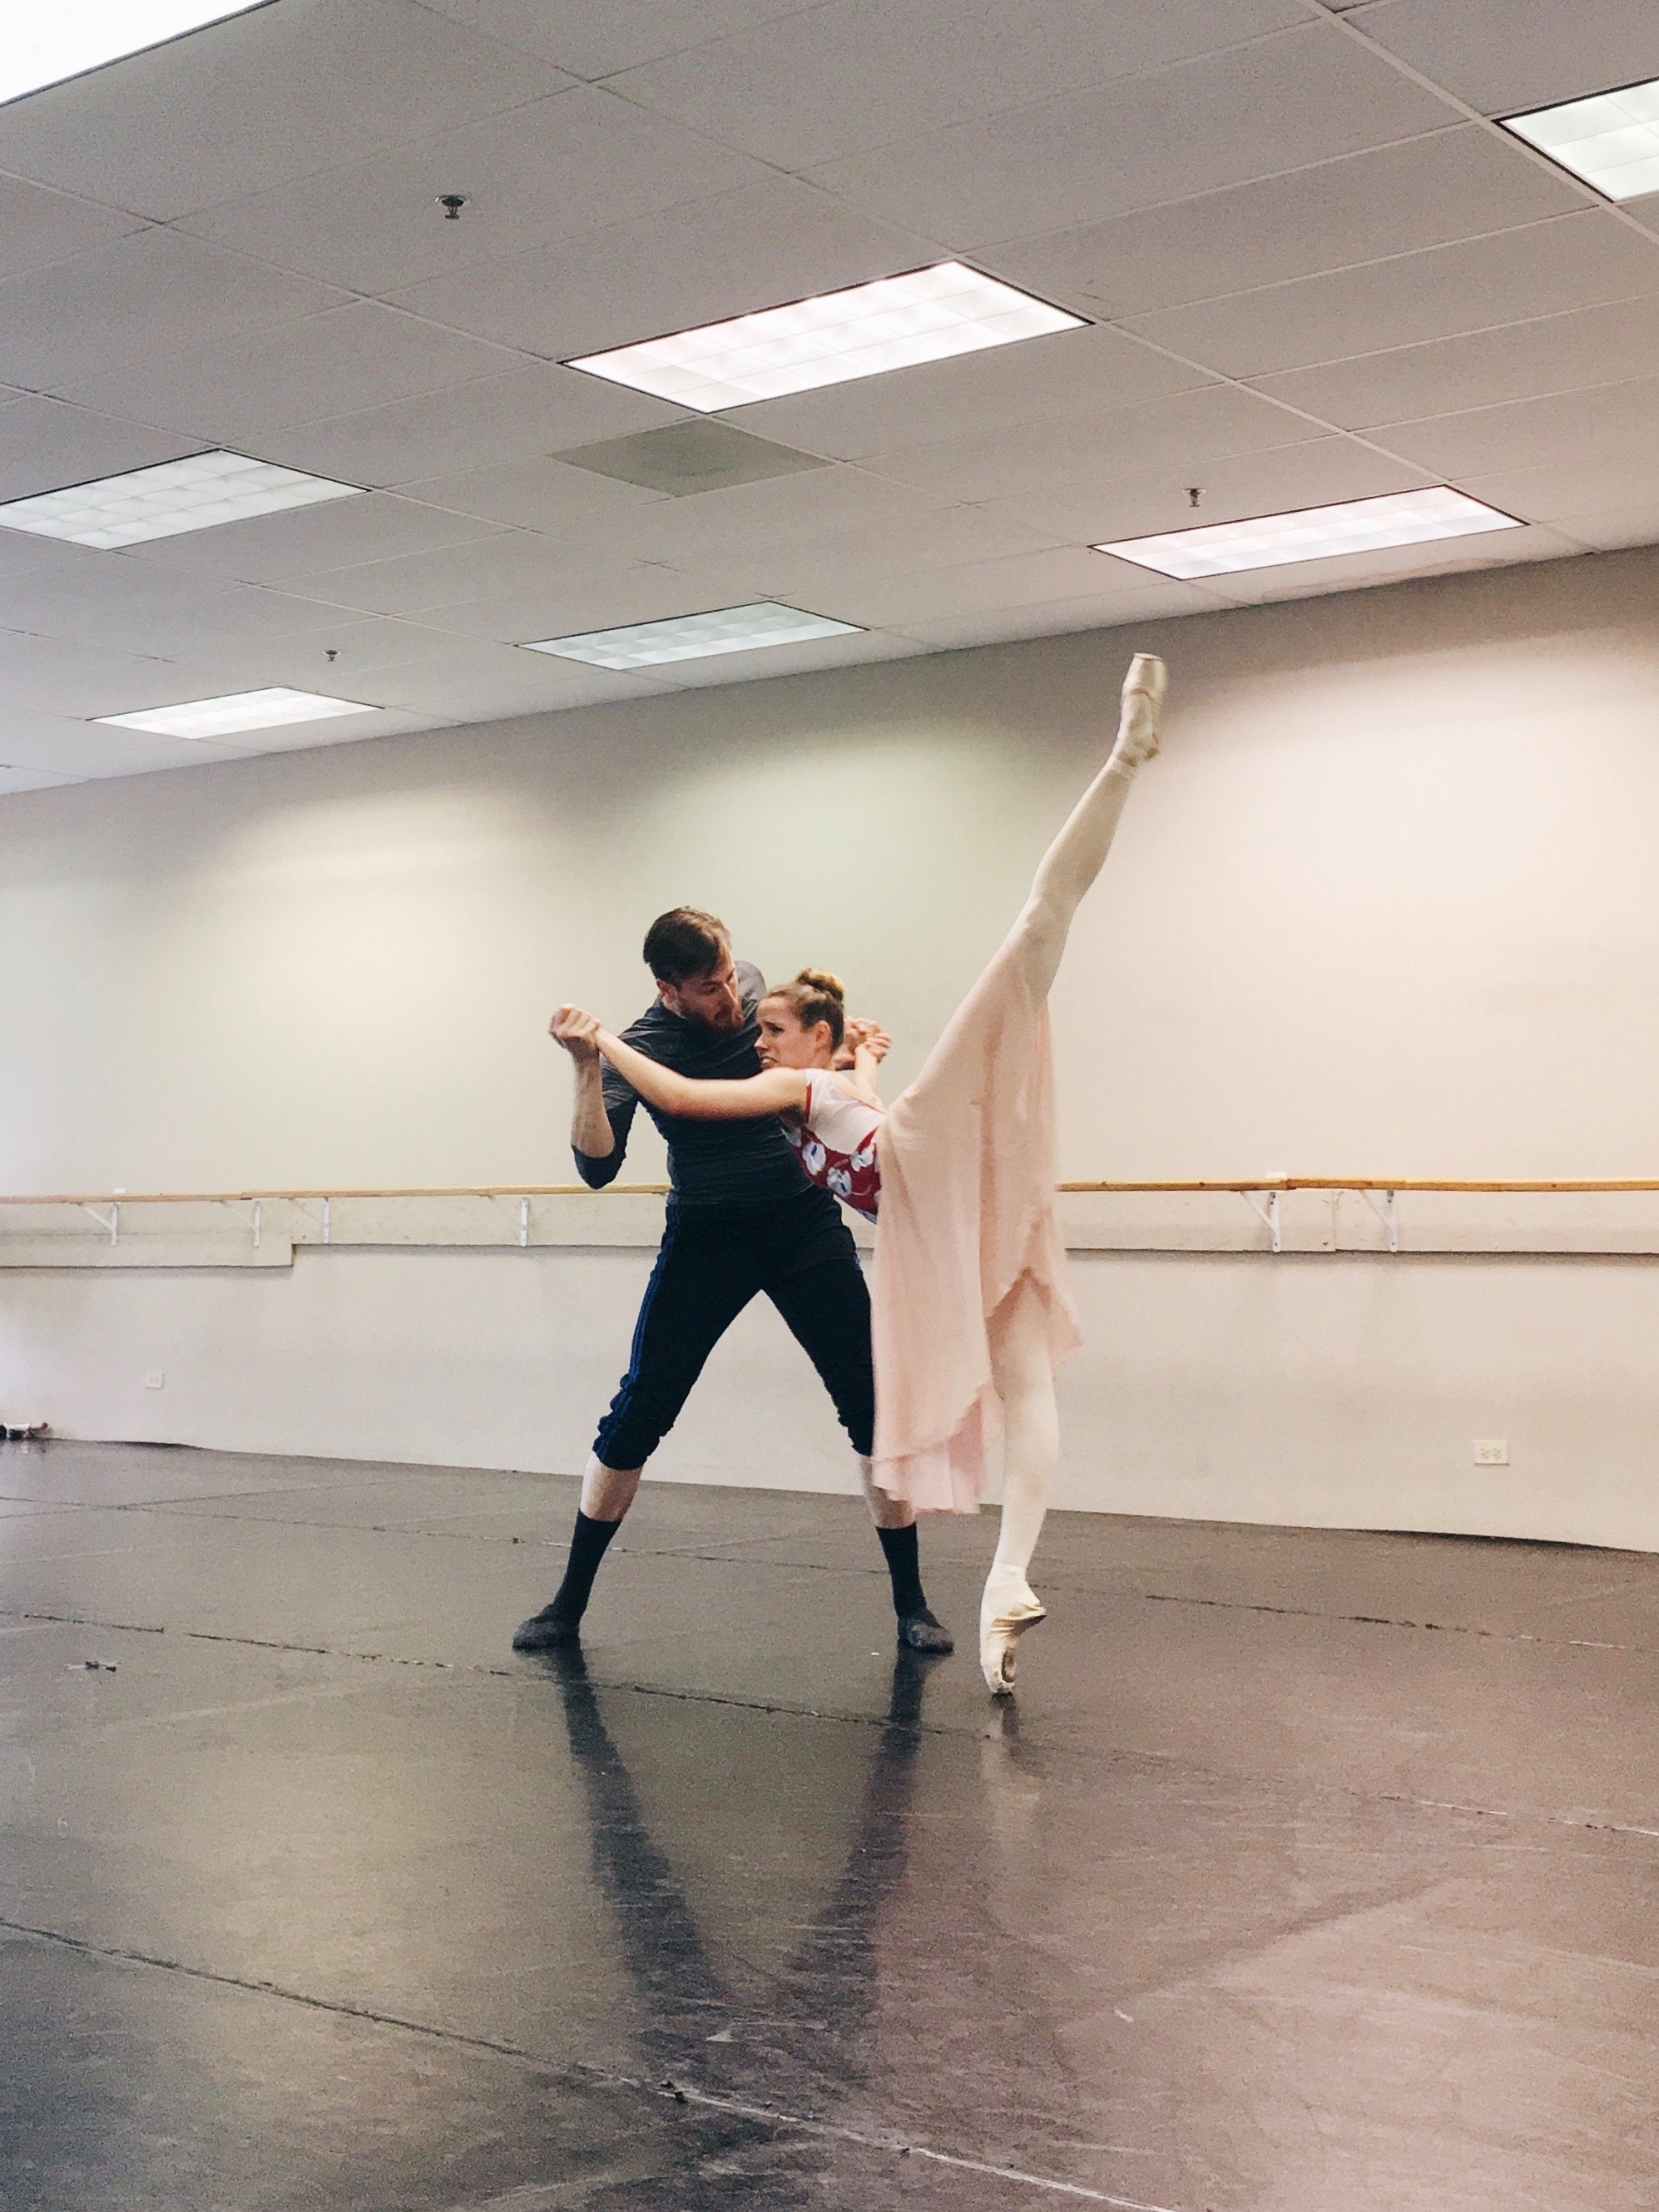 Samuel Opsal and Brette Benedict rehearsing the Jail Scene pas de deux from  Scarlet .